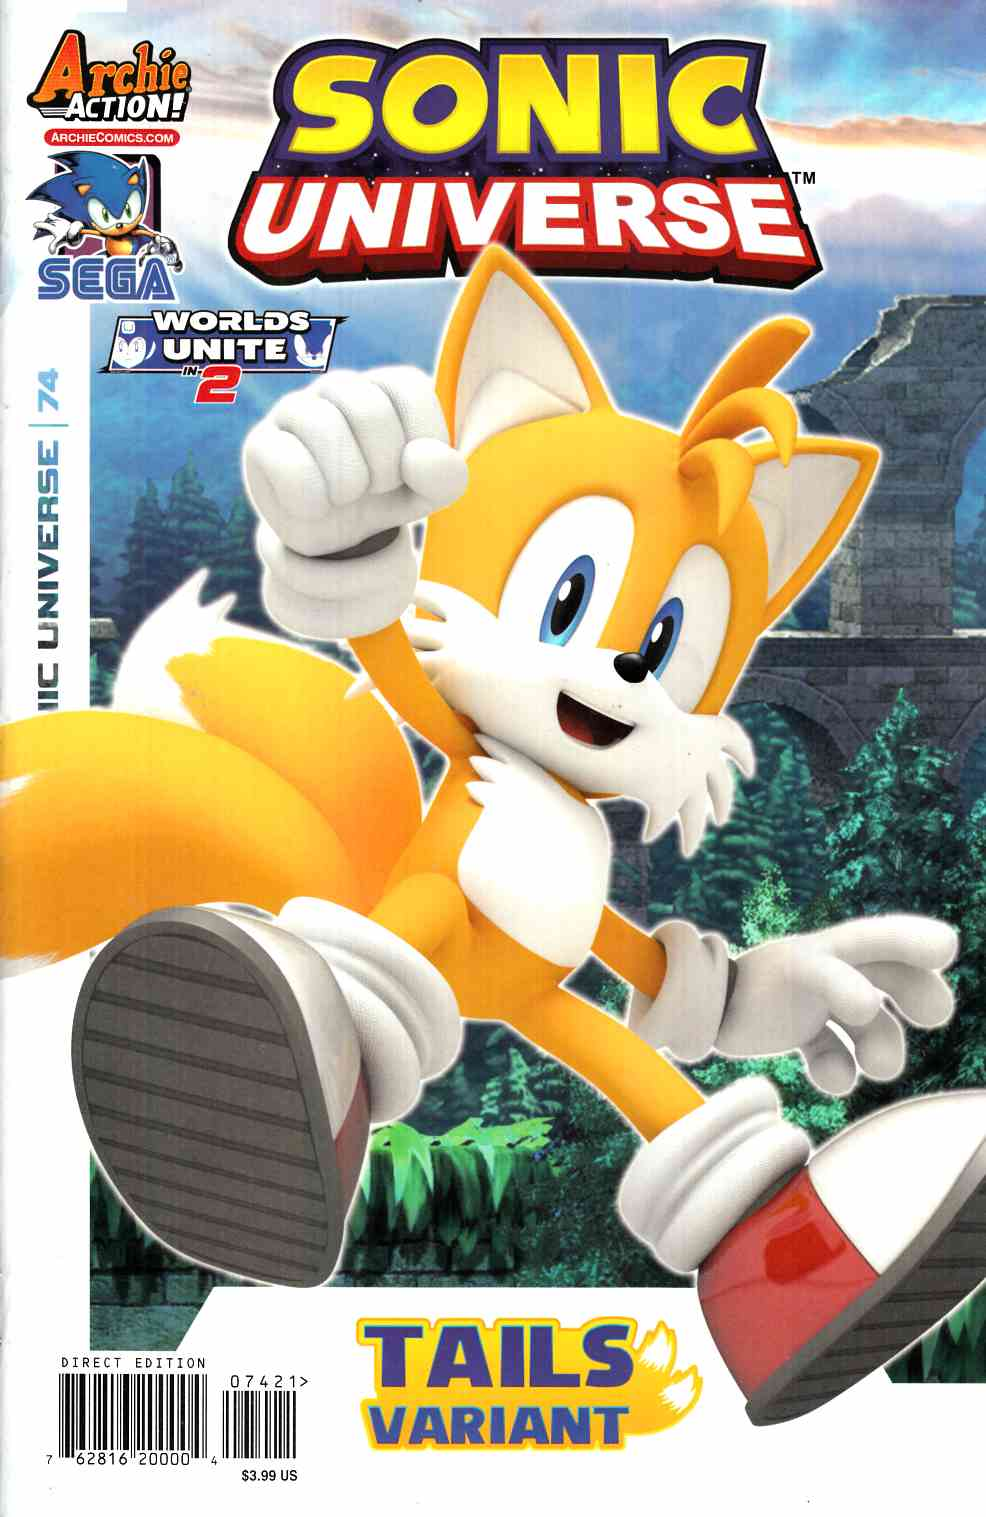 Sonic Universe #74 Tails Variant Cover [Archie Comic] THUMBNAIL